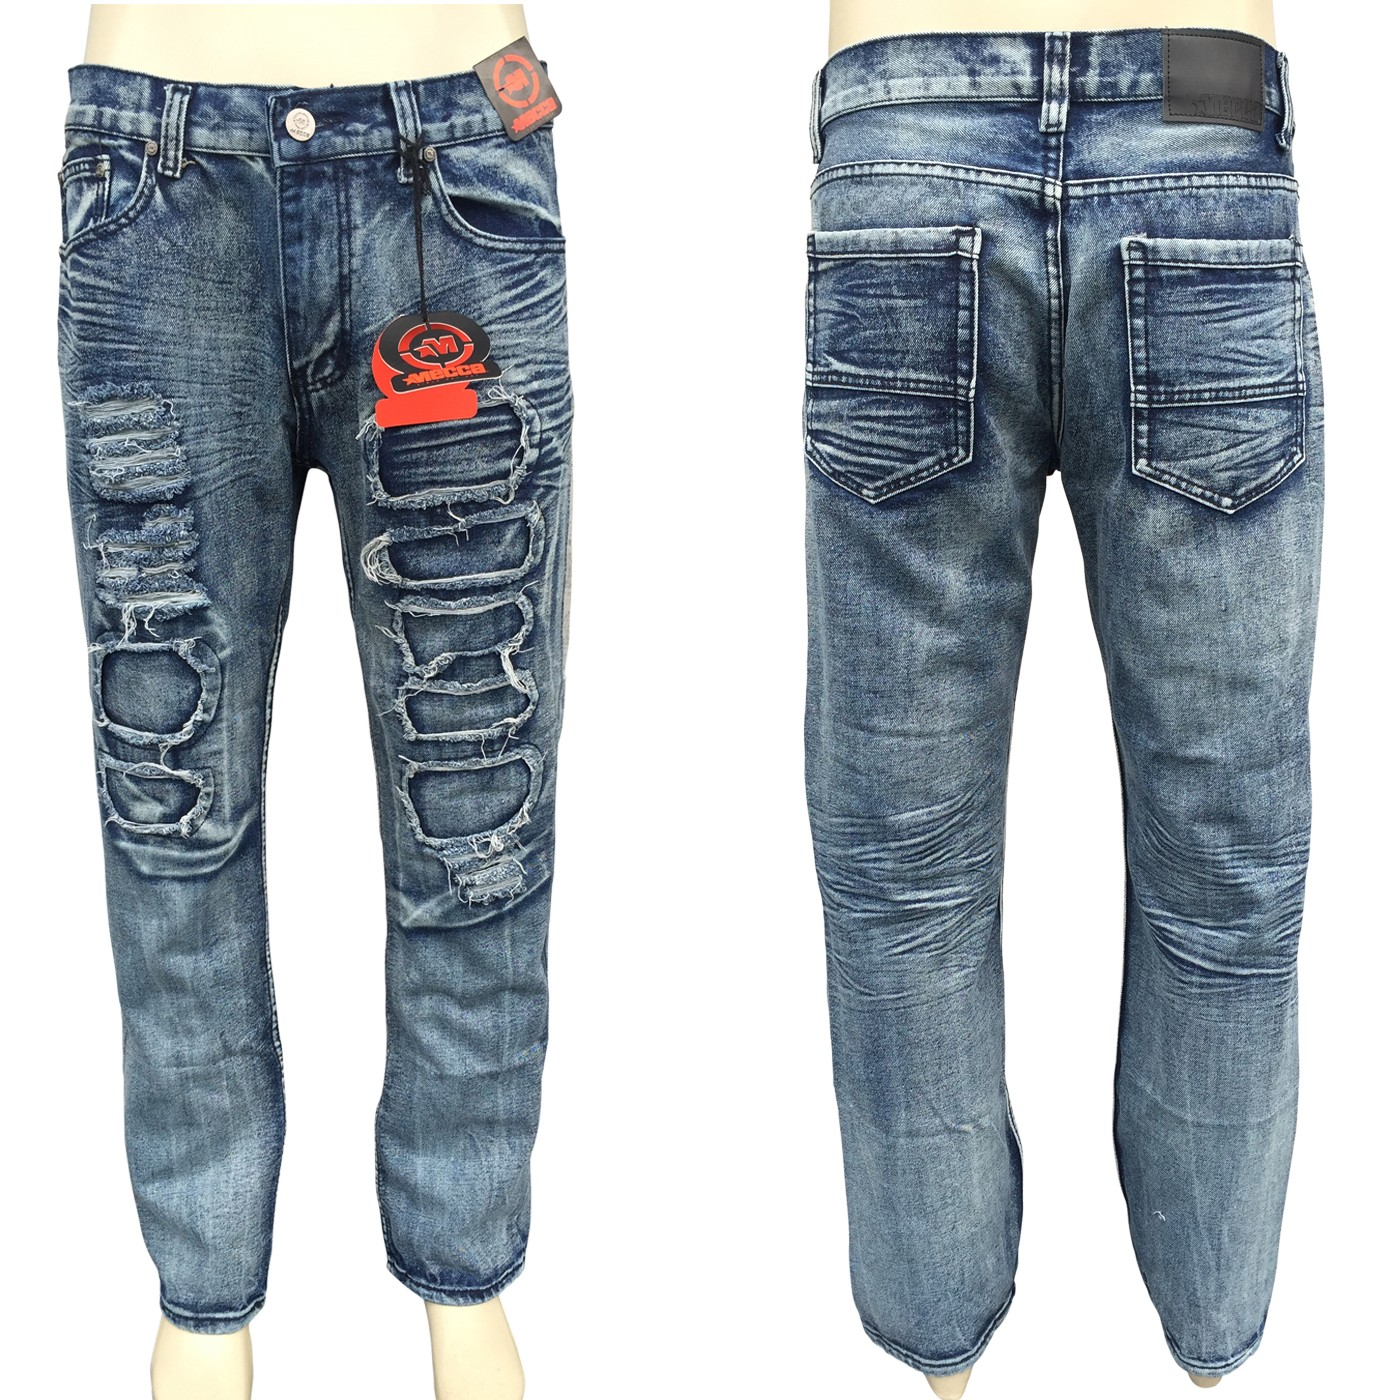 Why We Must Choose Jeans Wholesale?